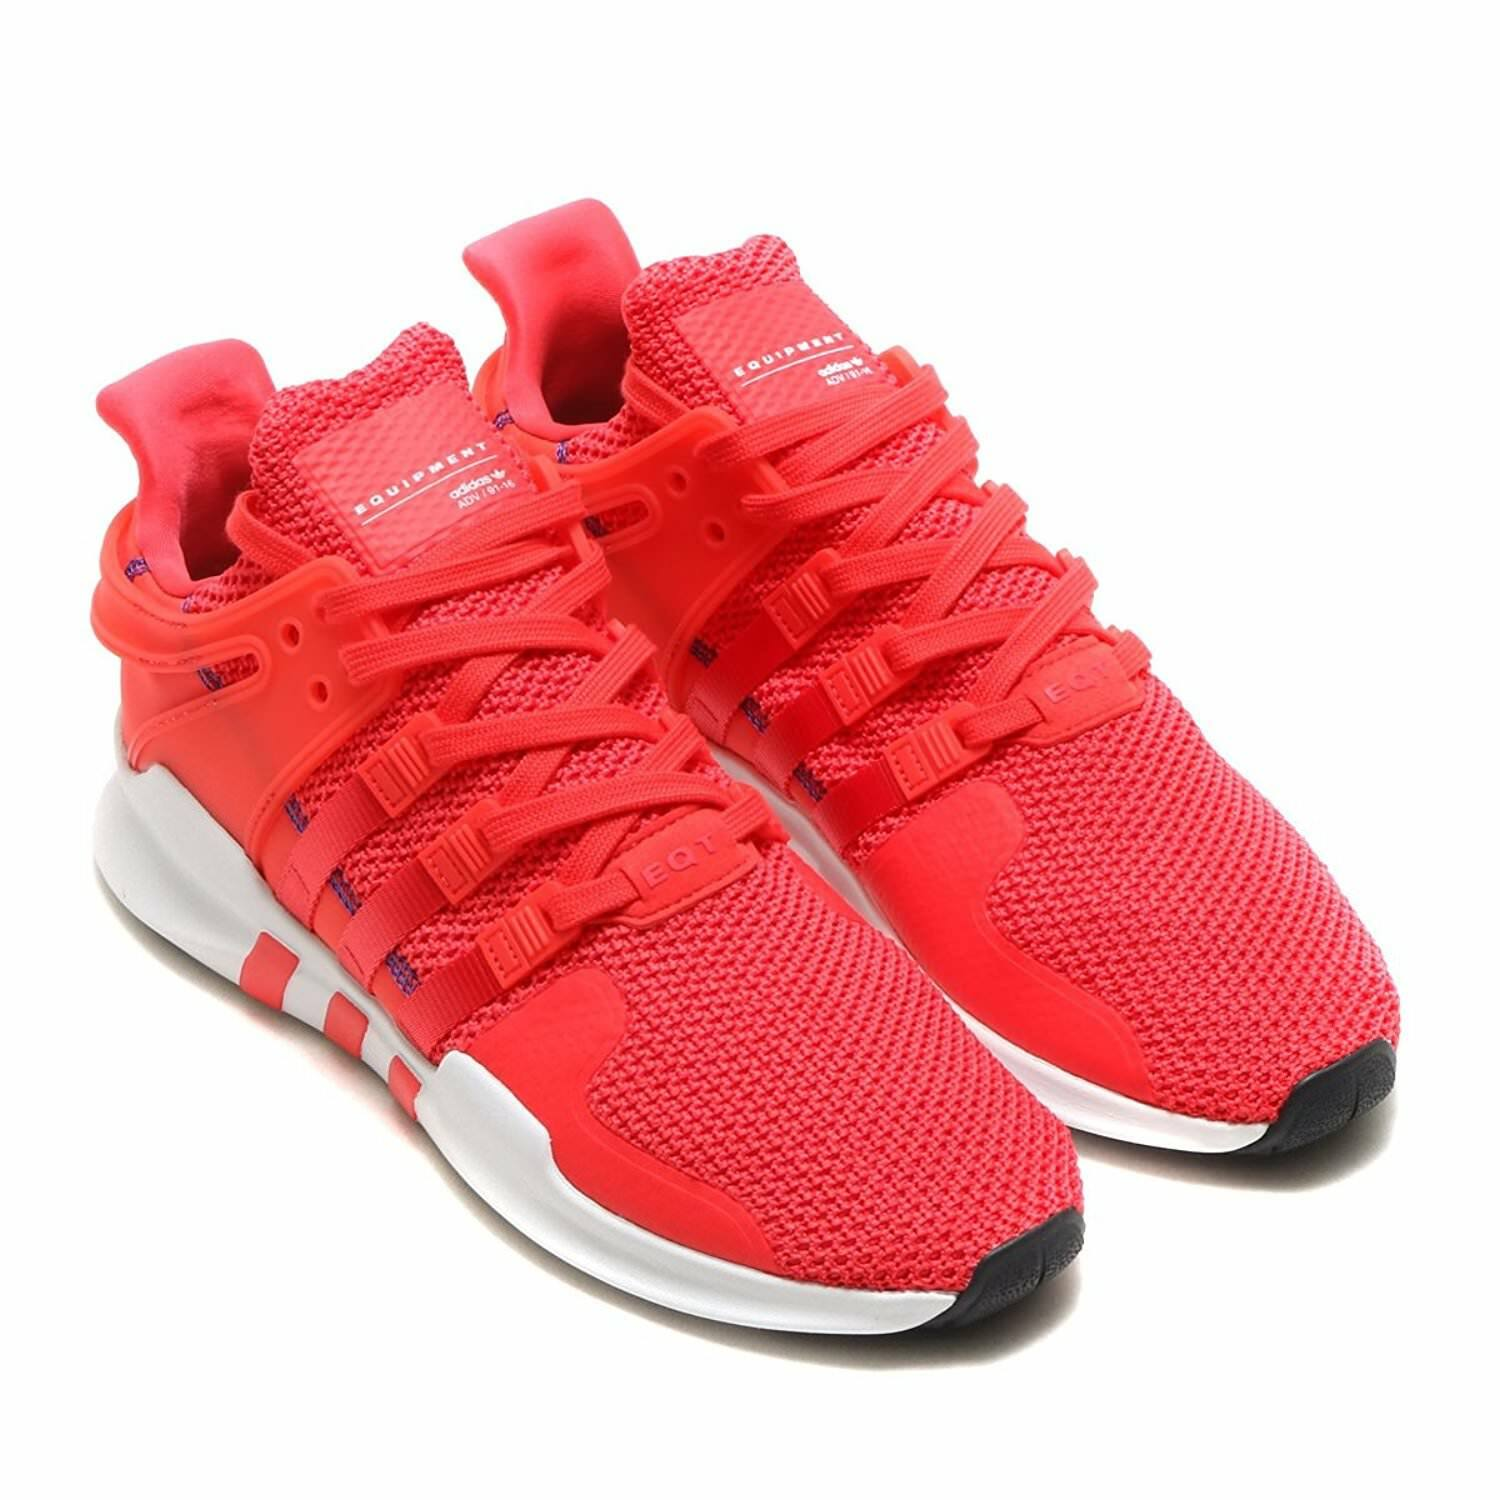 Adidas Mens EQT Support ADV Sneaker Red White CQ3004